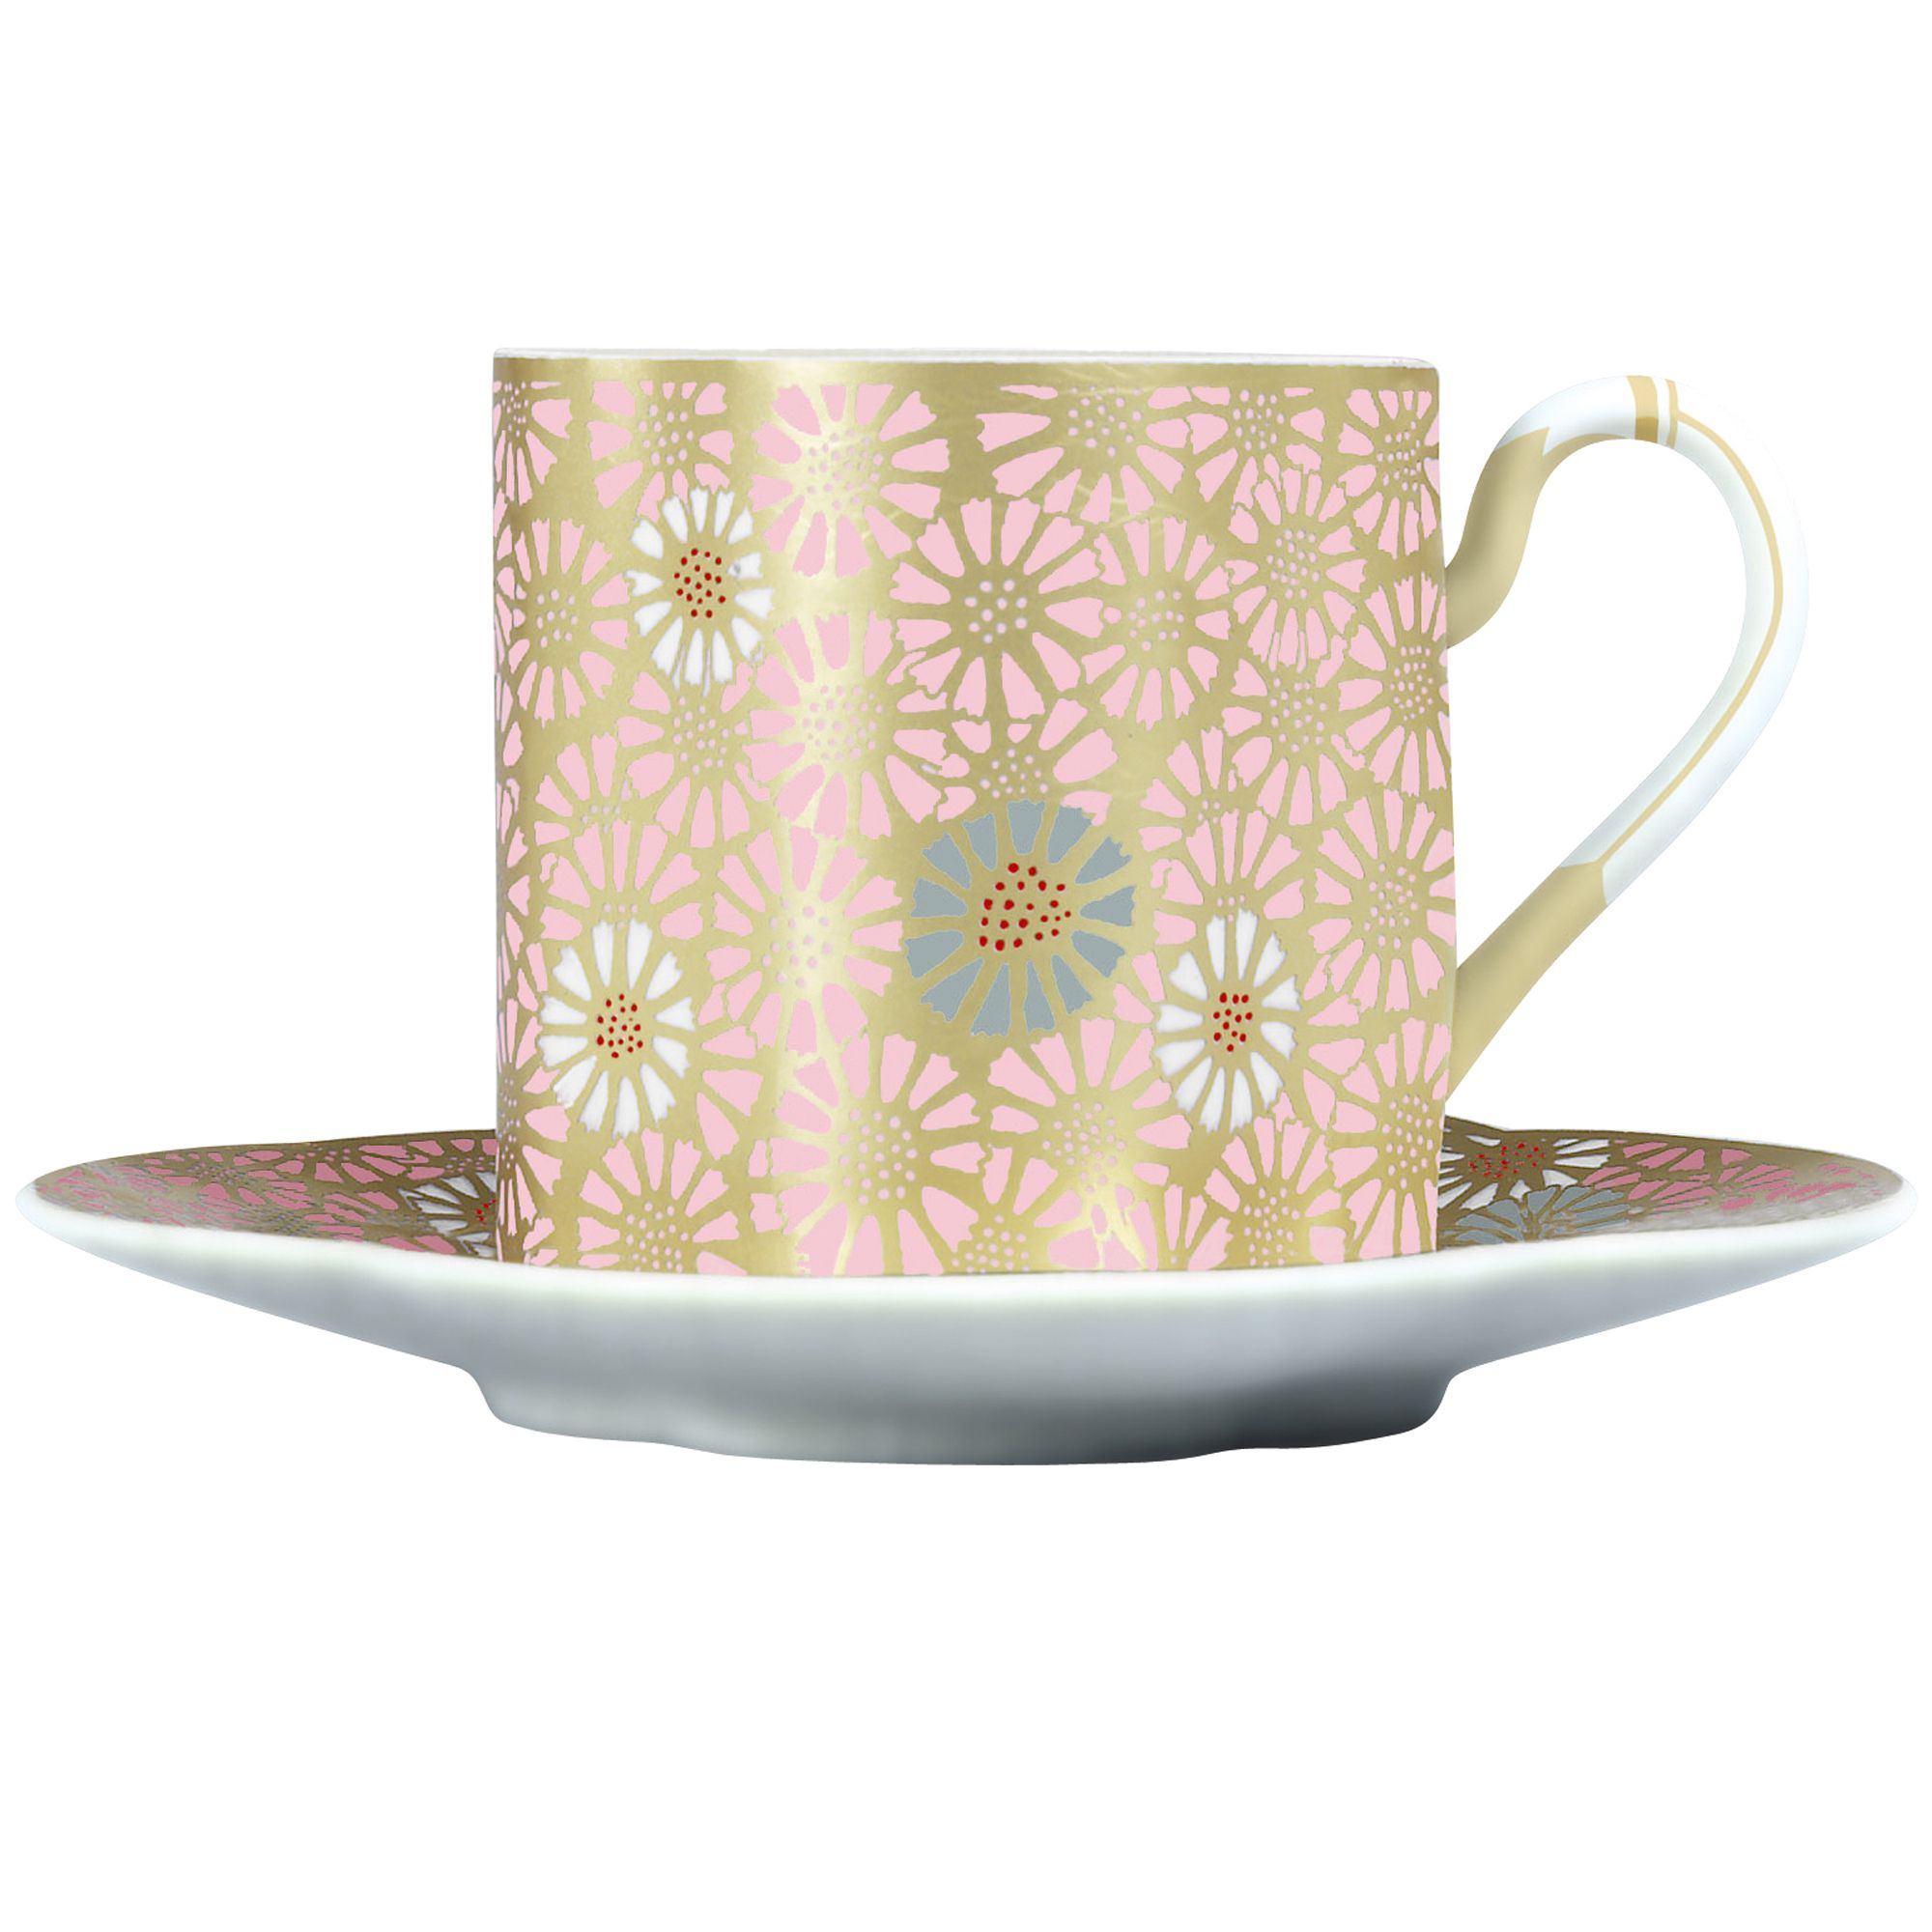 Daisy cup and saucer